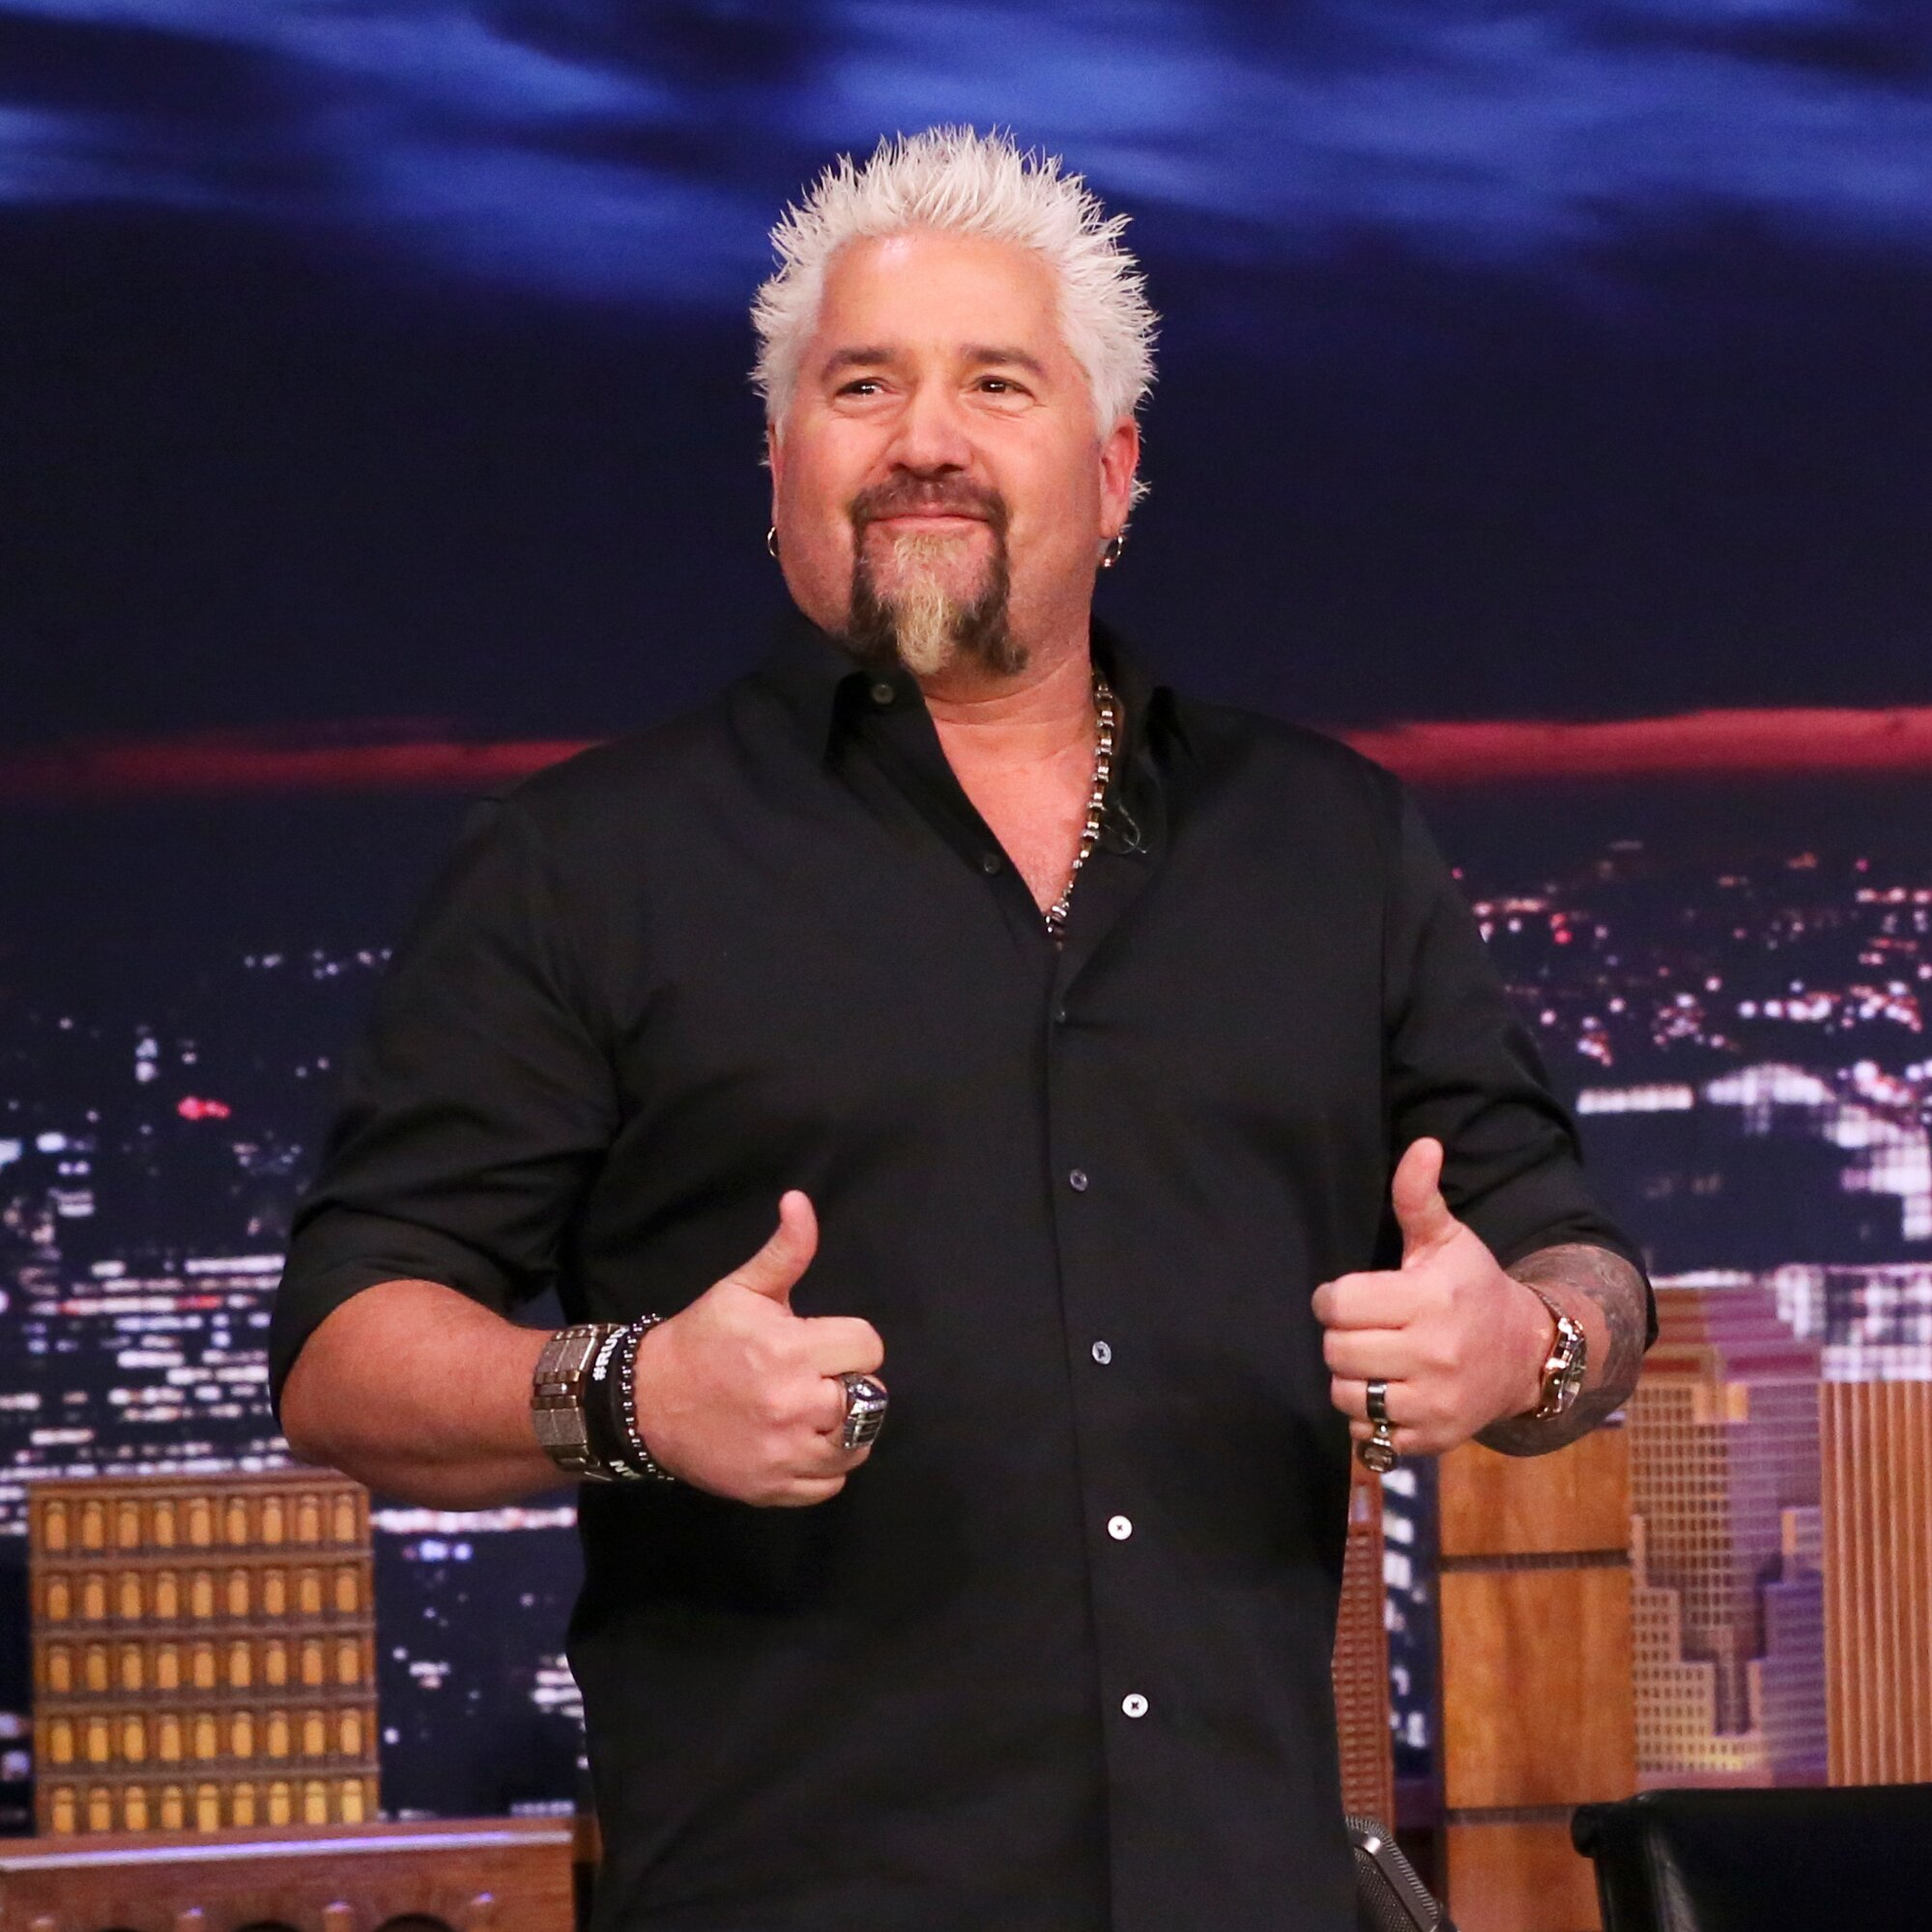 Guy Fieri Phone number, Email Id, Fanmail, Instagram, Tiktok, and Contact Details